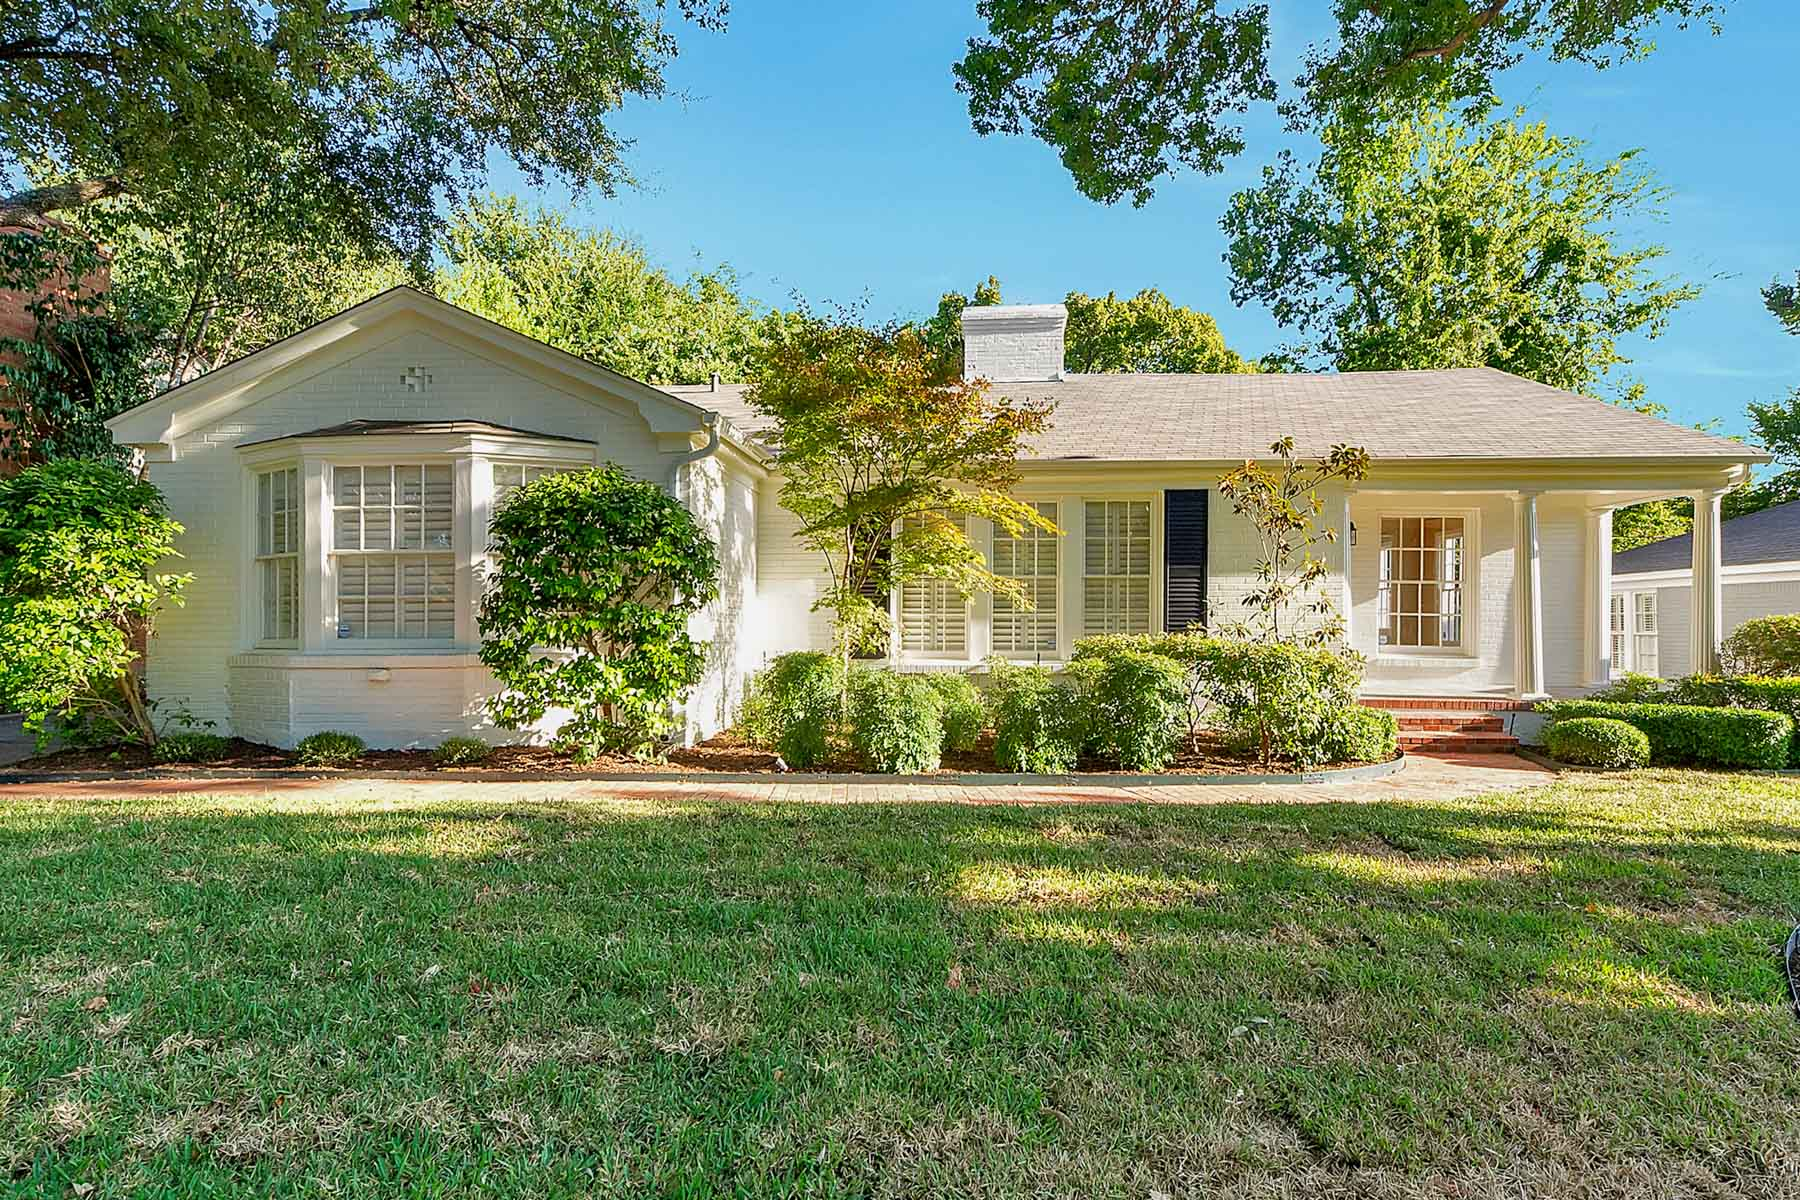 Maison unifamiliale pour l Vente à Updated Traditional in Descriable Fort Worth Neighborhood 5629 Collinwood Ave Fort Worth, Texas 76107 États-Unis